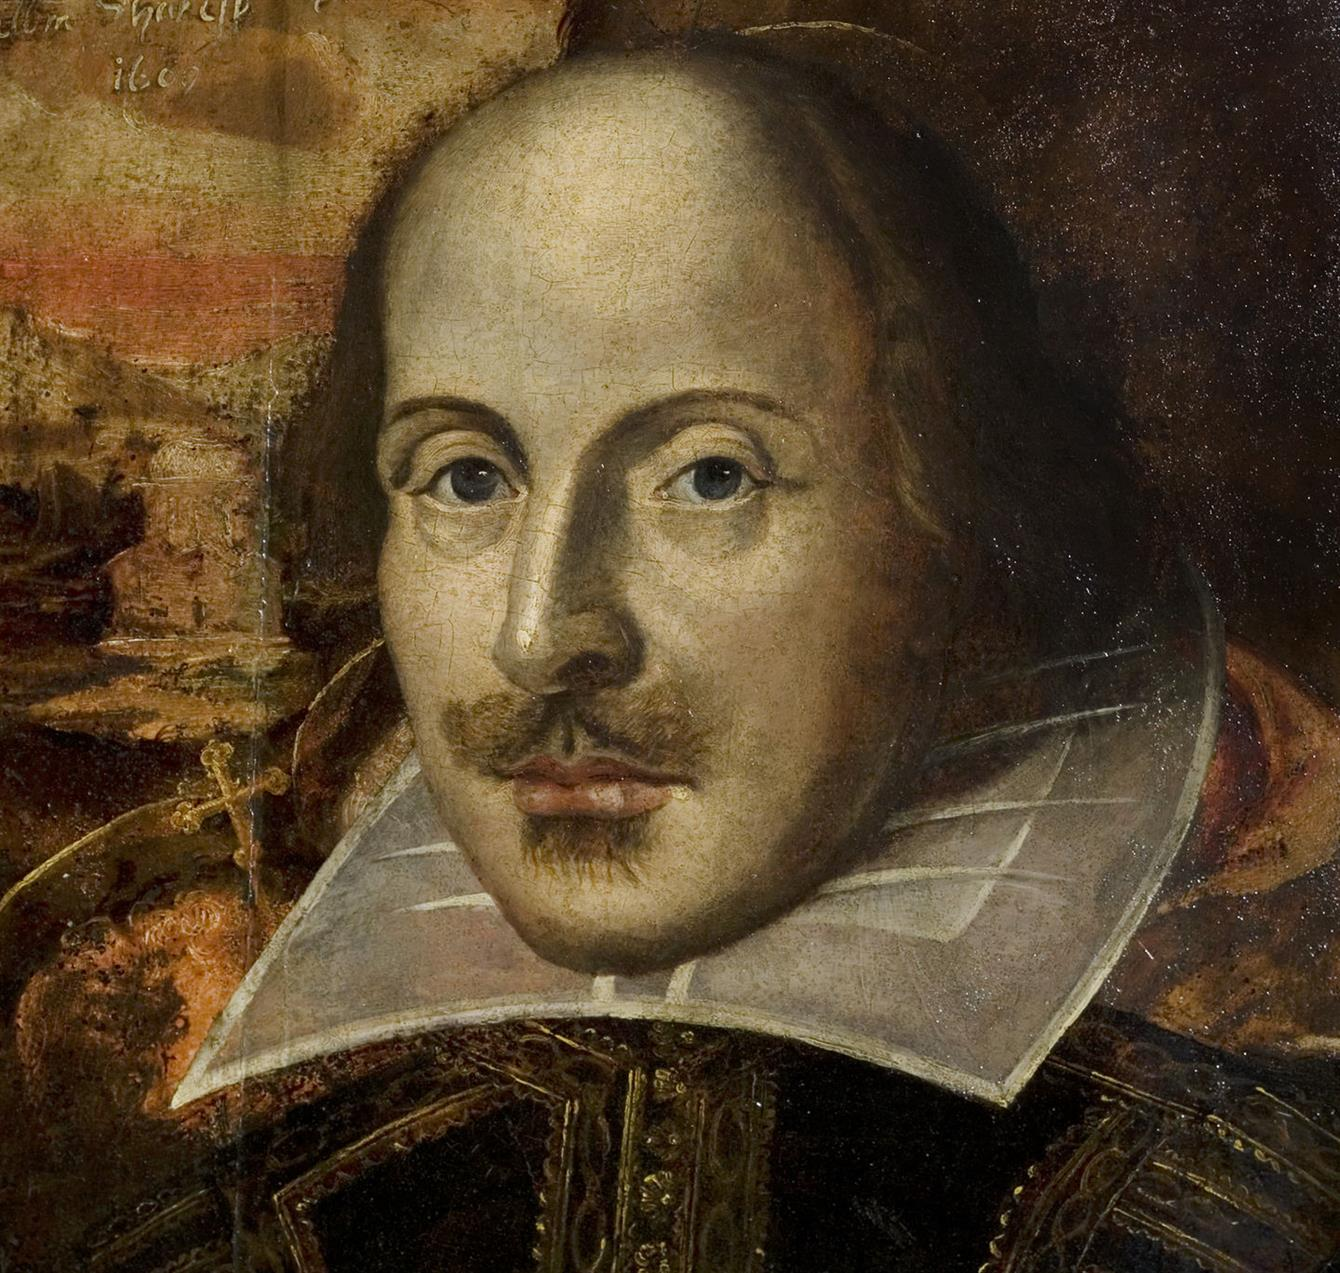 the_flower_portrait_of_william_shakespeare_rsc_theatre_collection_6154.tmb-gal-1340.jpg